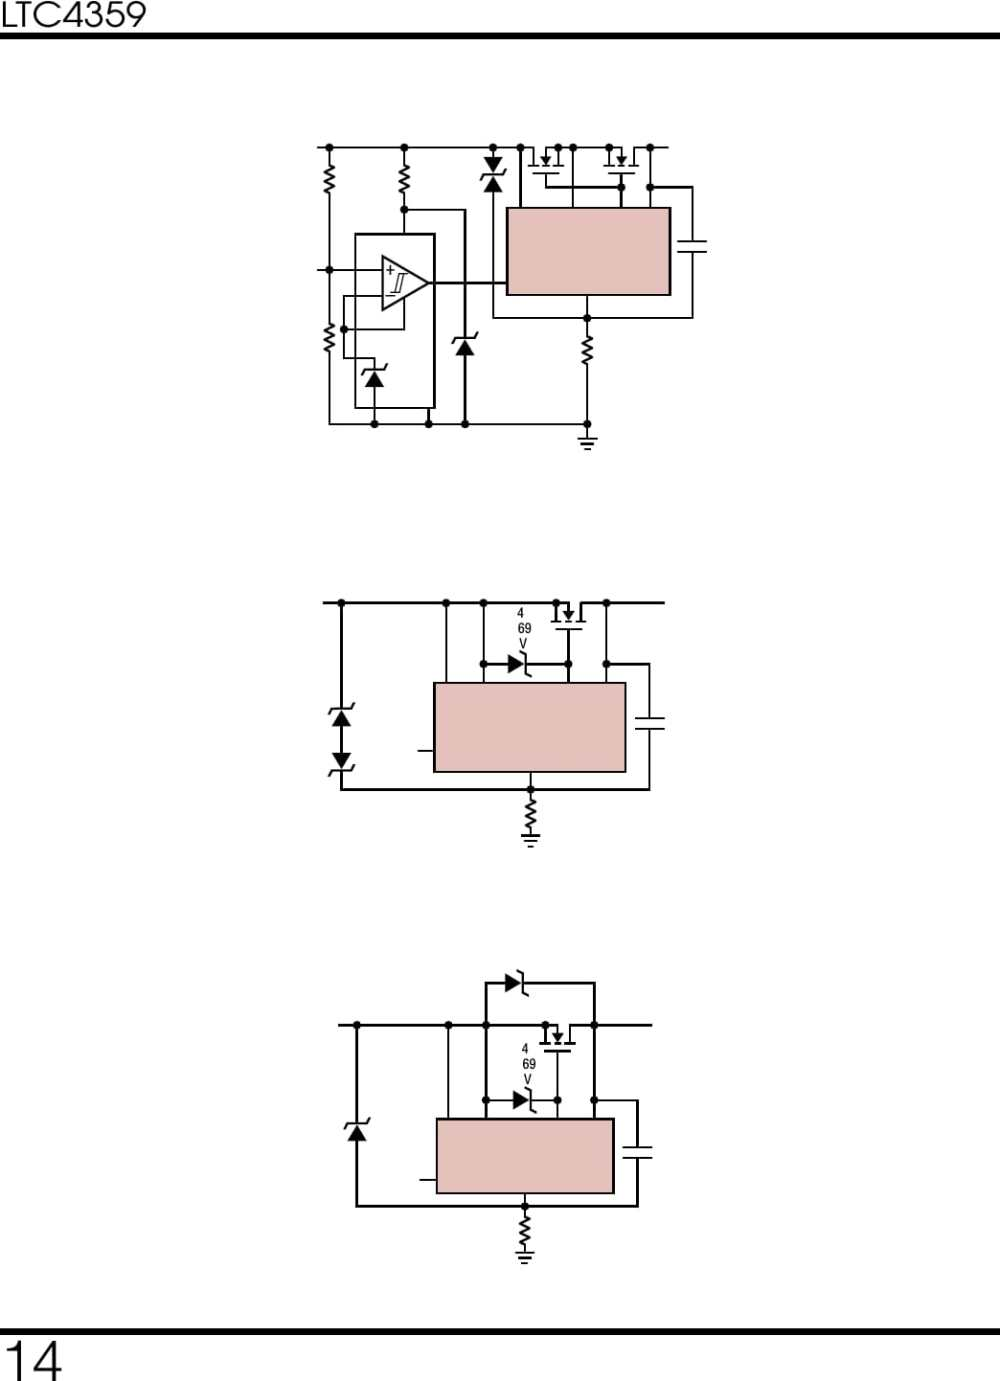 medium resolution of 48v wiring diagram fair play best wiring libraryfairplay golf cart wiring diagram 12v ltc4359 datasheet linear